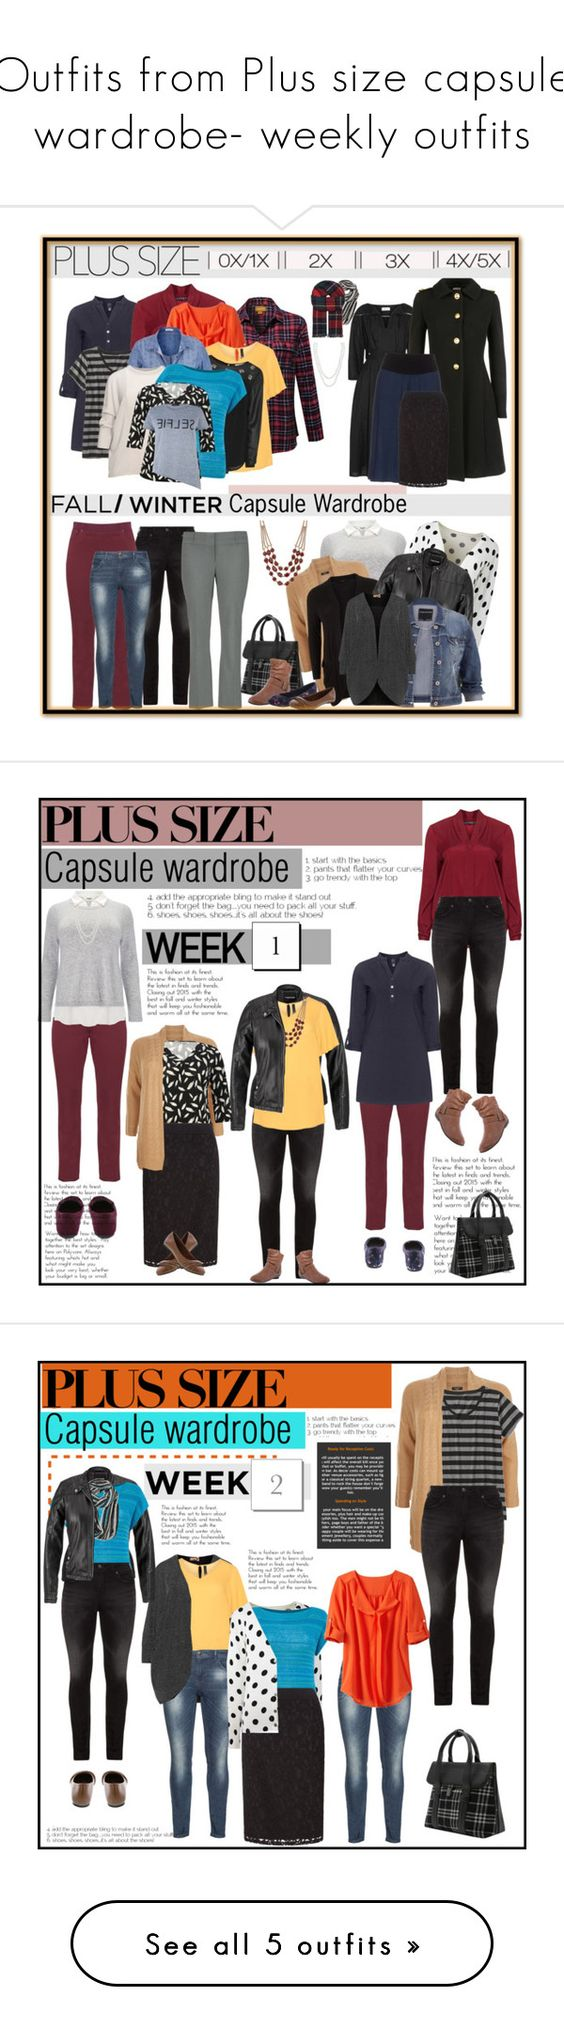 """""""Outfits from Plus size capsule wardrobe- weekly outfits"""" by budding-designer ❤ liked on Polyvore featuring Studio 8, Silver Jeans Co., Raphaela by Brax, ZJ Denim Identity, Zimmermann, Miu Miu, maurices, Manon Baptiste, Jette and TravelSmith"""